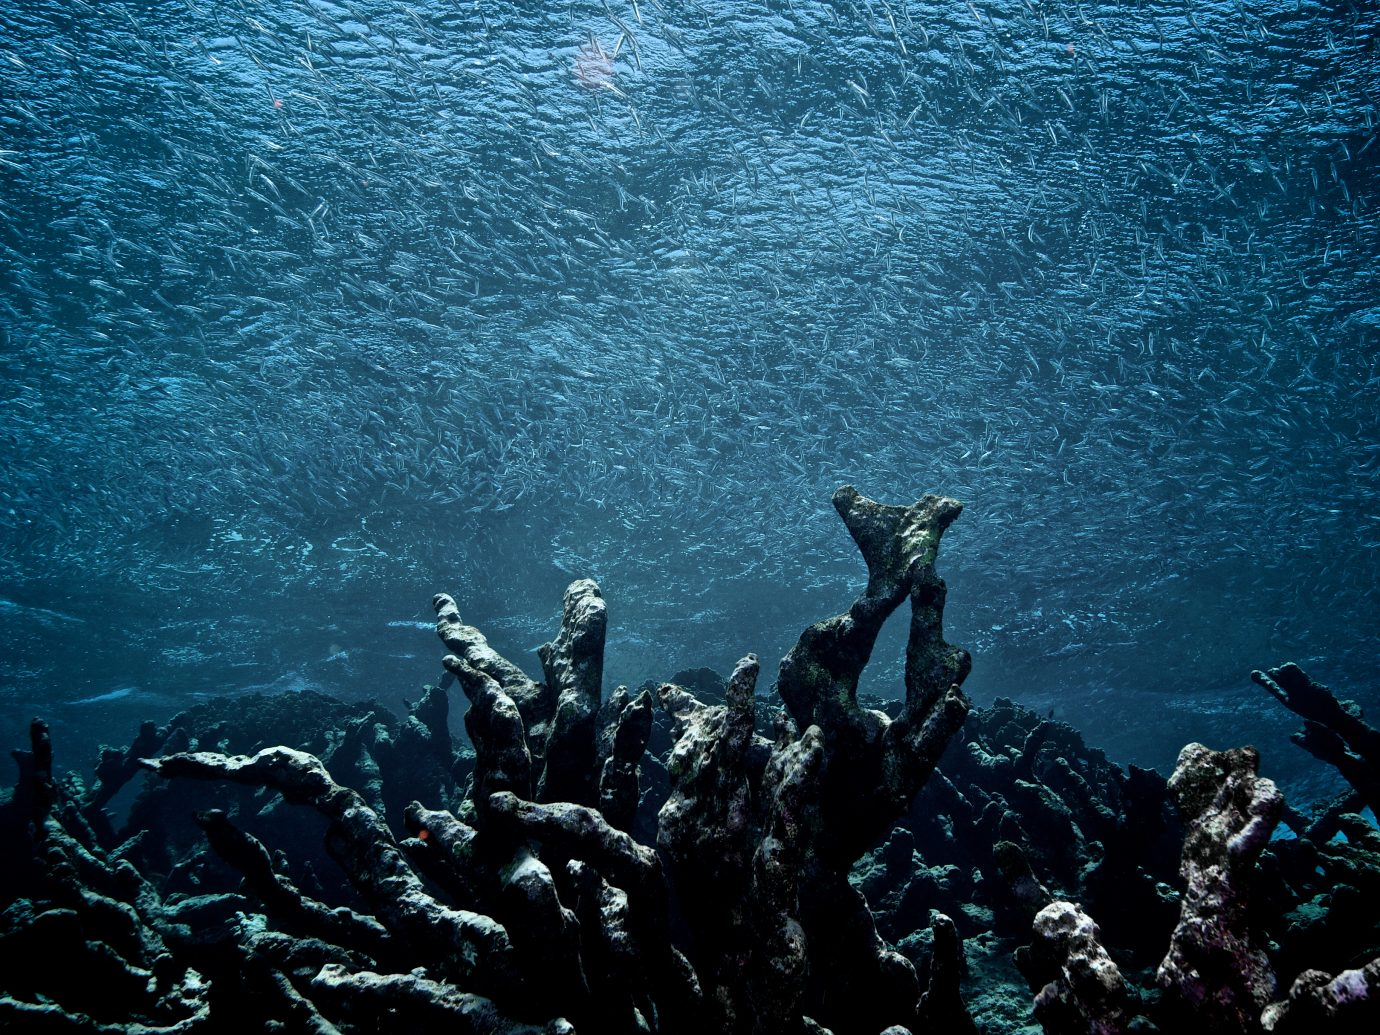 A school of fish swims over a field of dead coral, Los Roques National Park, Venezuela